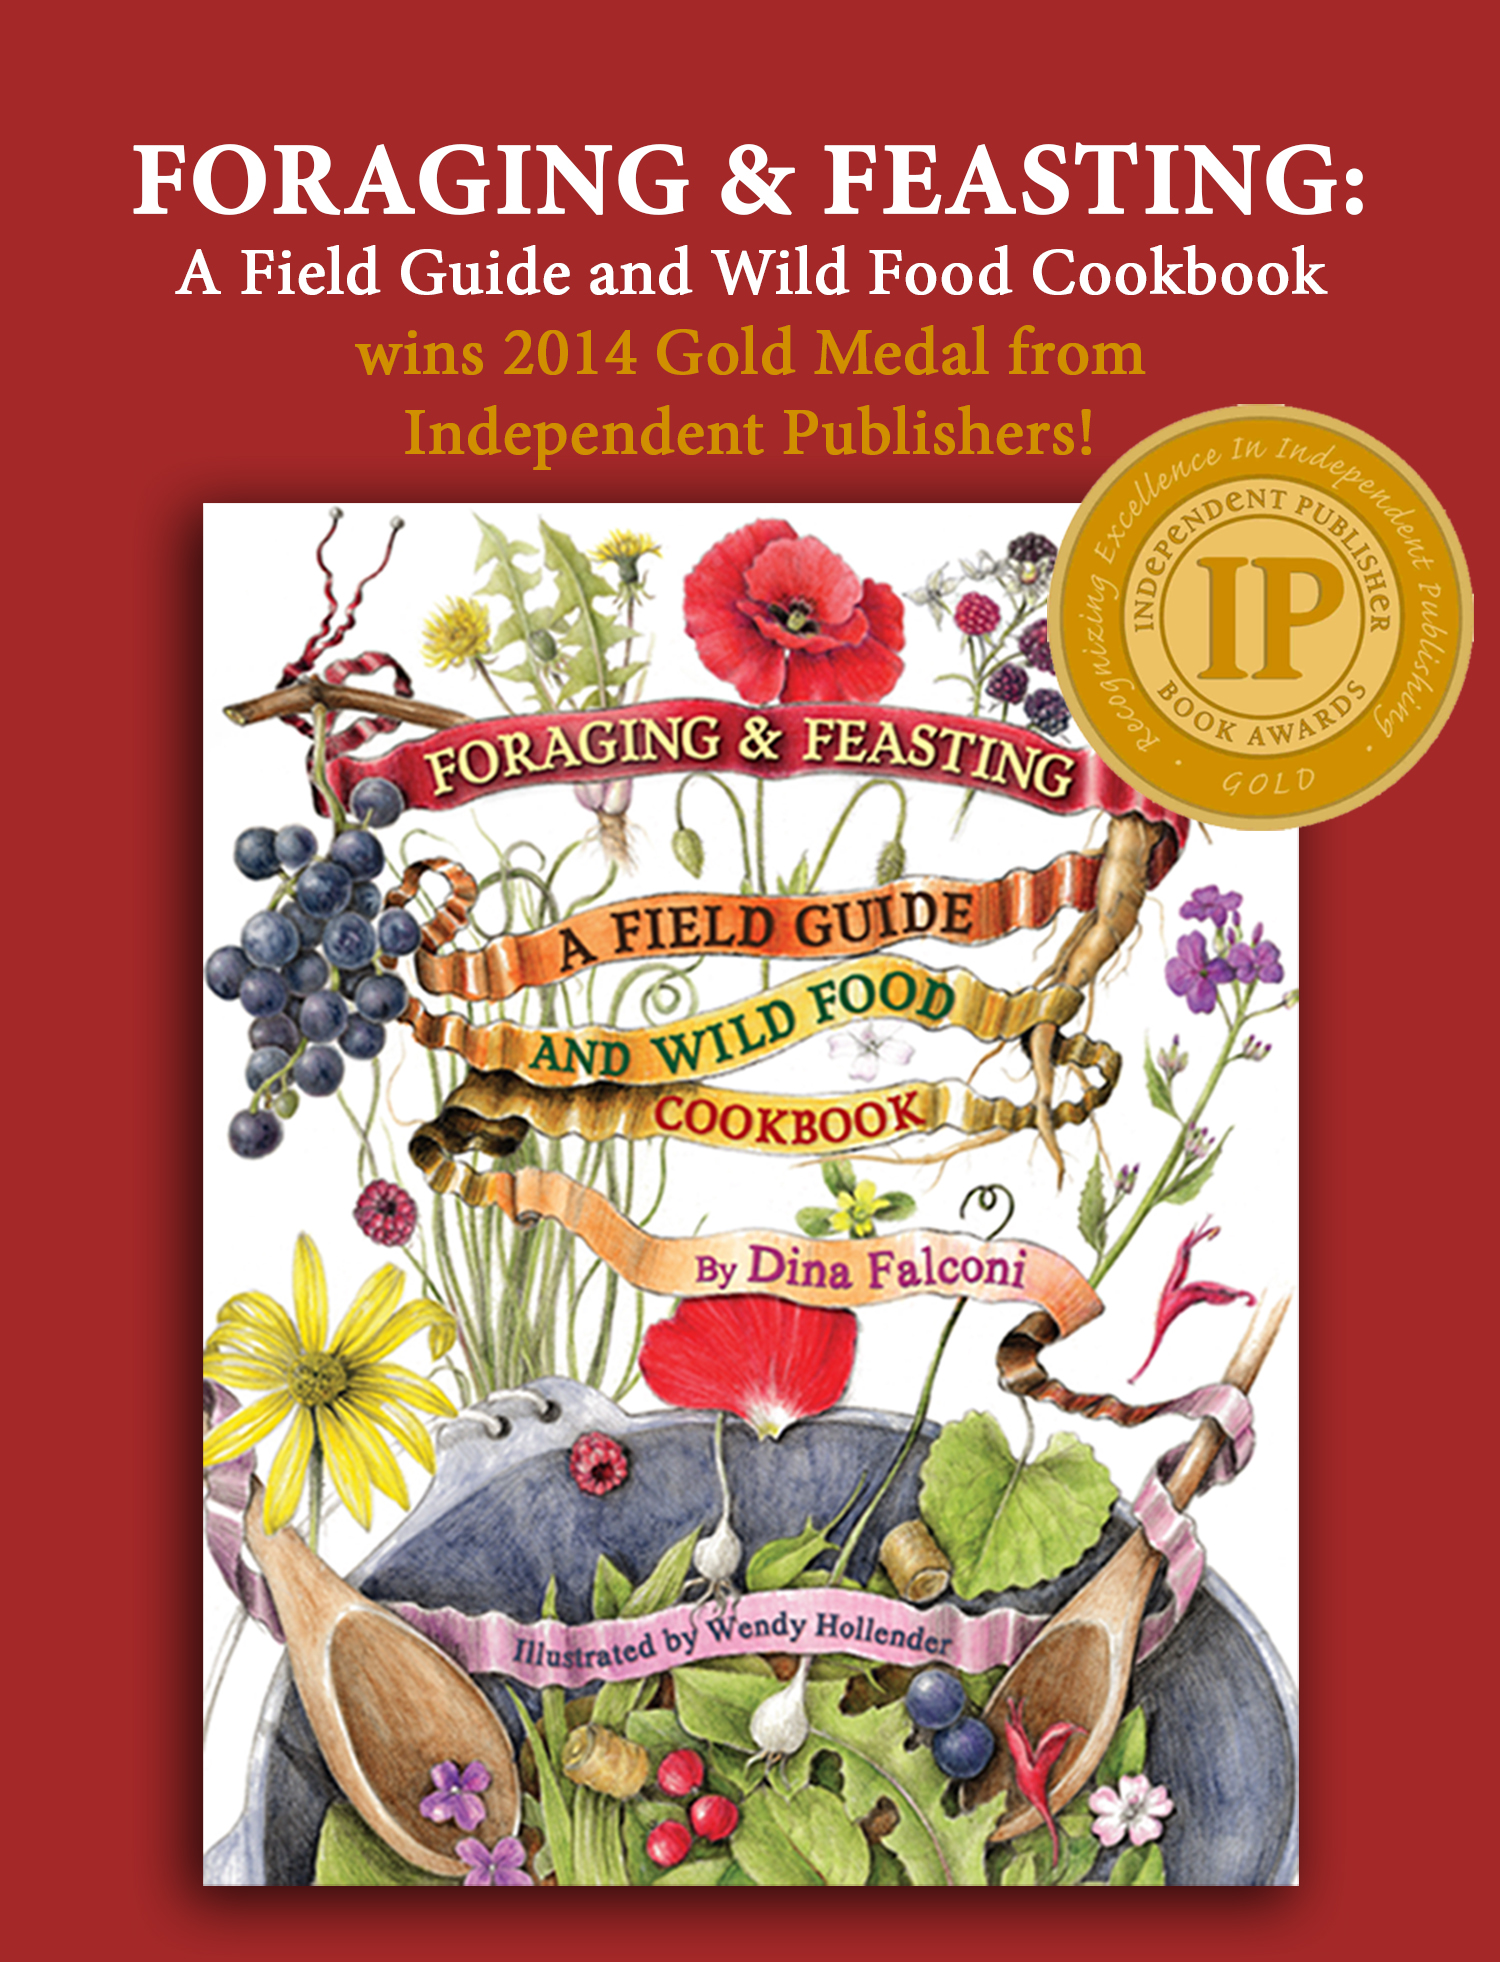 May 2014: Foraging & Feasting wins the Gold IPPY Award